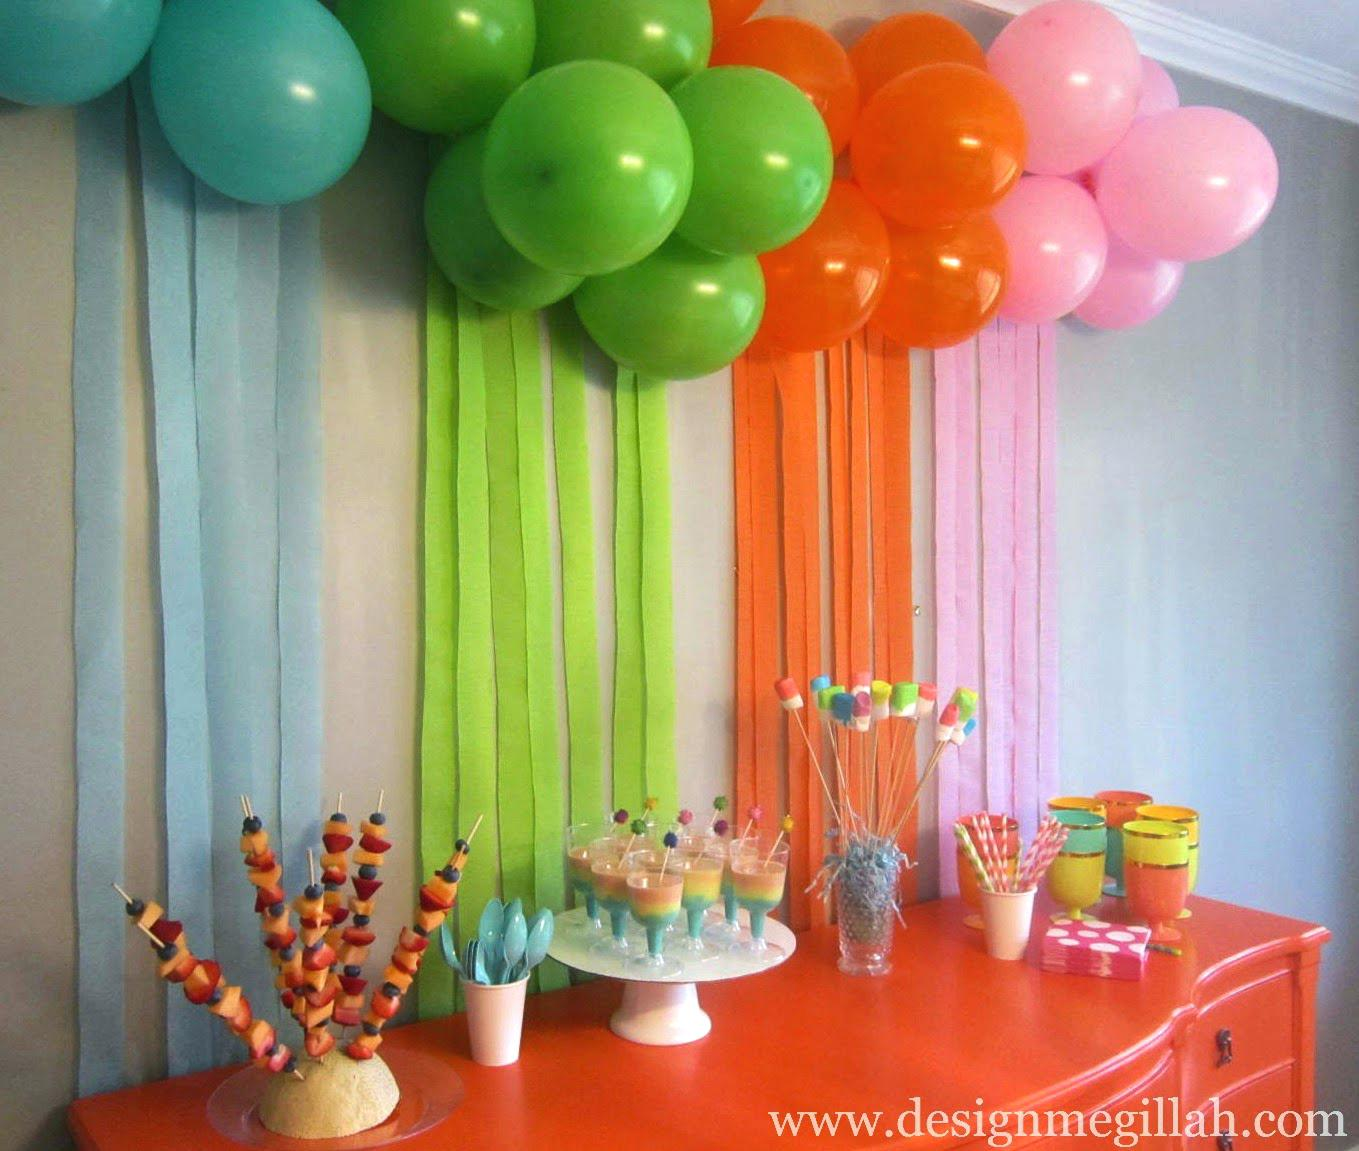 decoration themes for birthday parties ; birthday-home-decor-ideas-birthday-party-decoration-ideas-at-home-1-home-birthday-party-decor-ideas